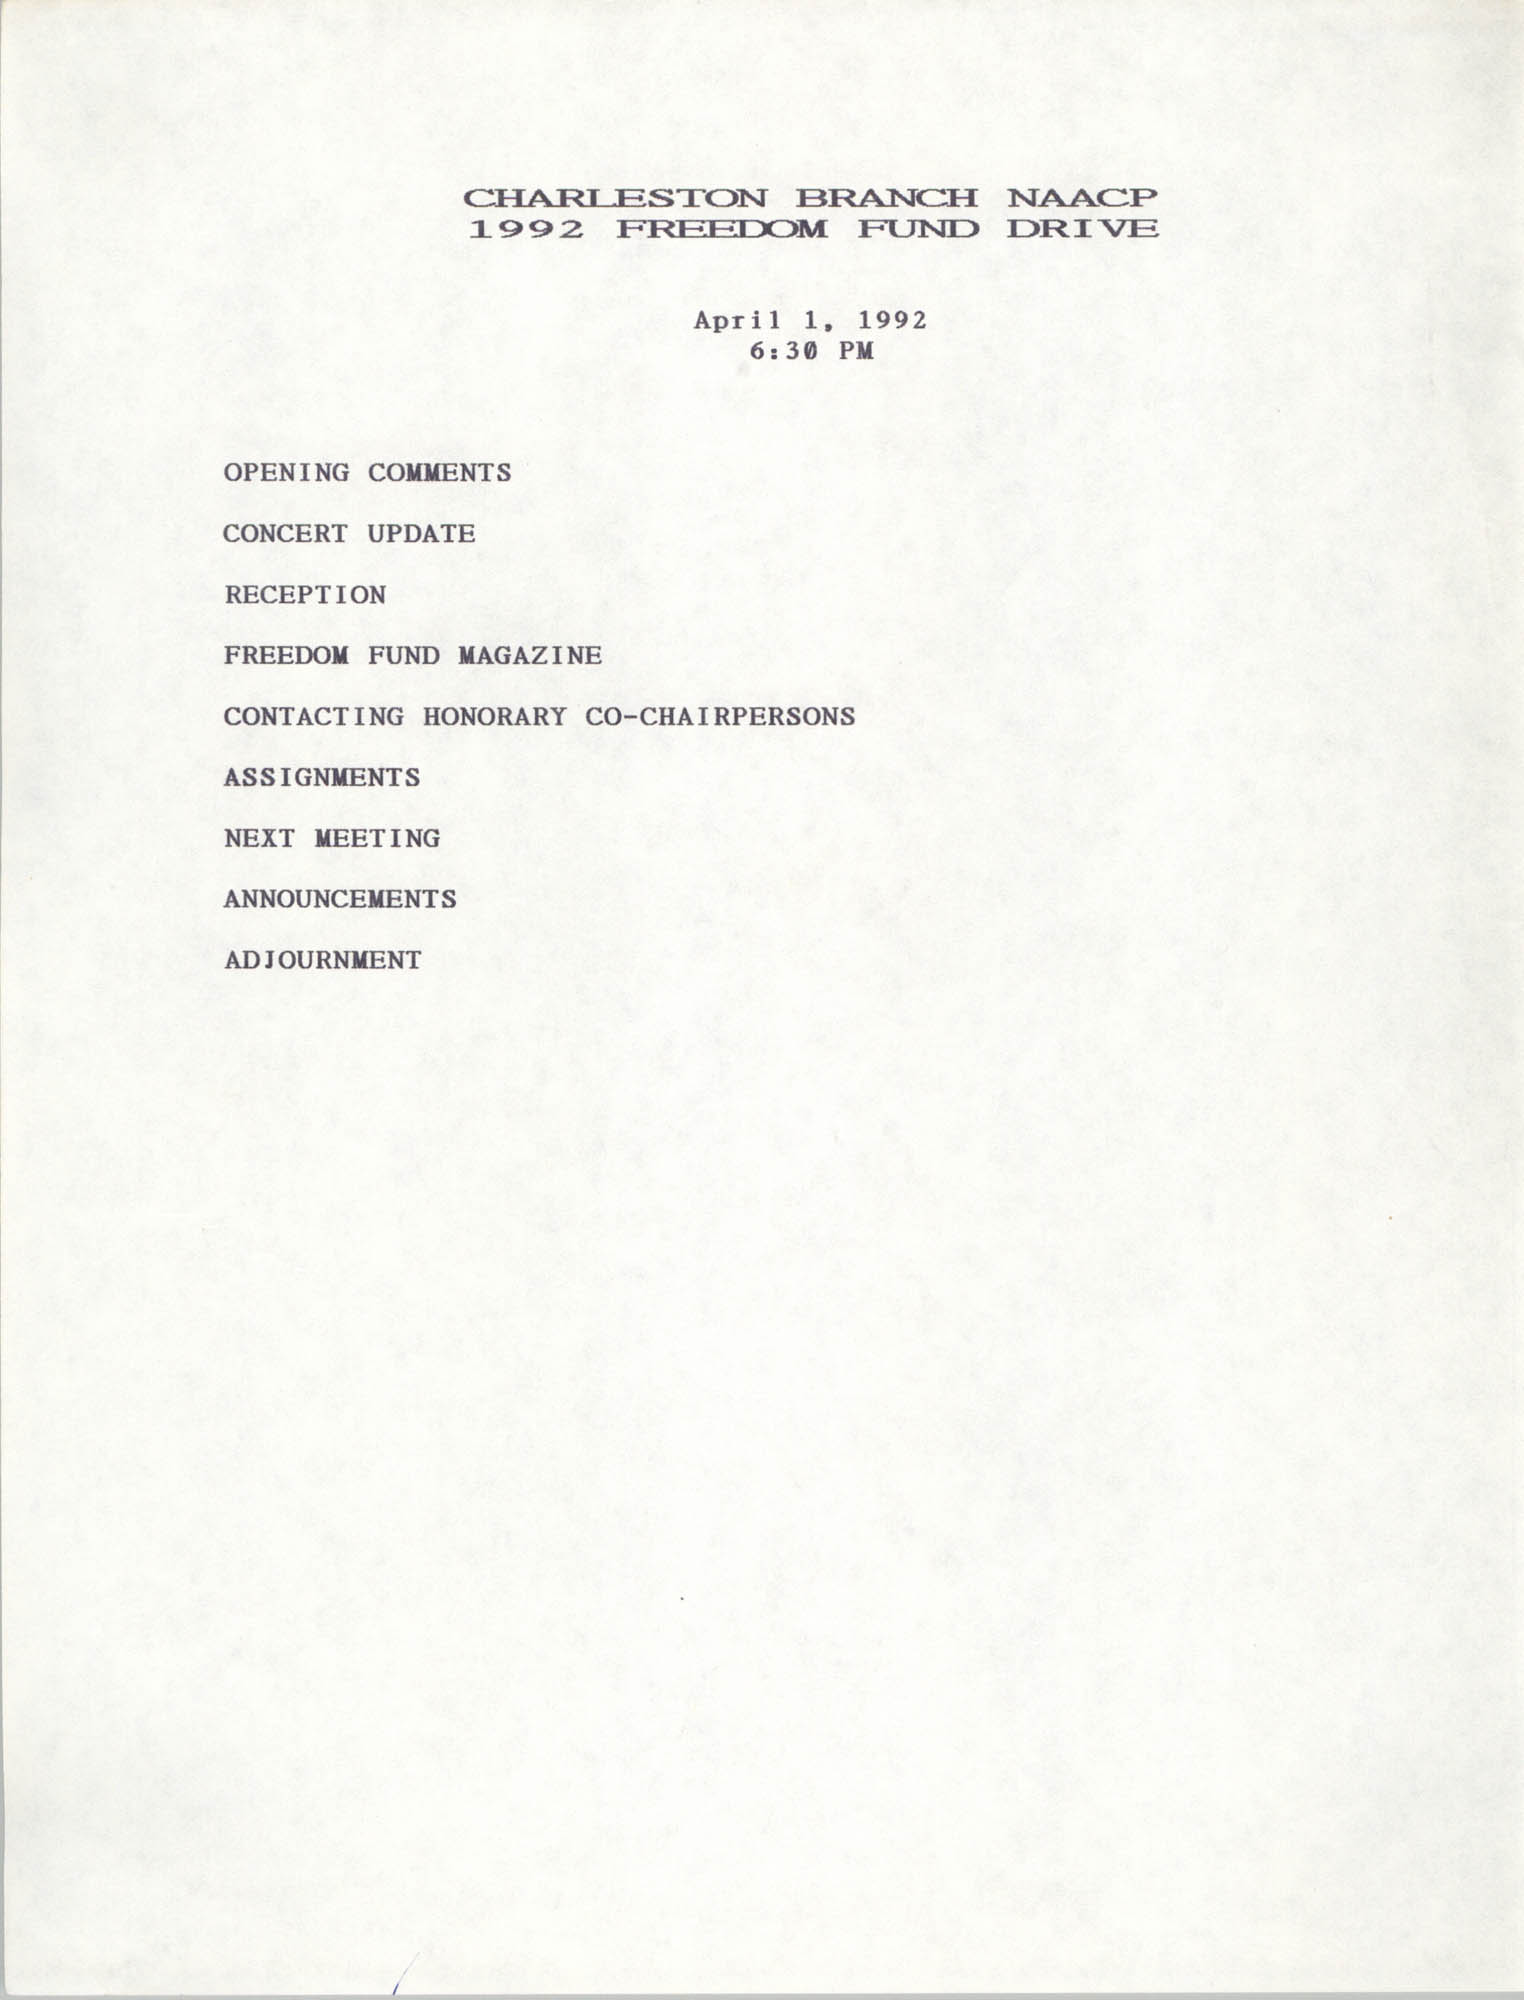 Agenda, Freedom Fund Drive, National Association for the Advancement of Colored People, April 1, 1992